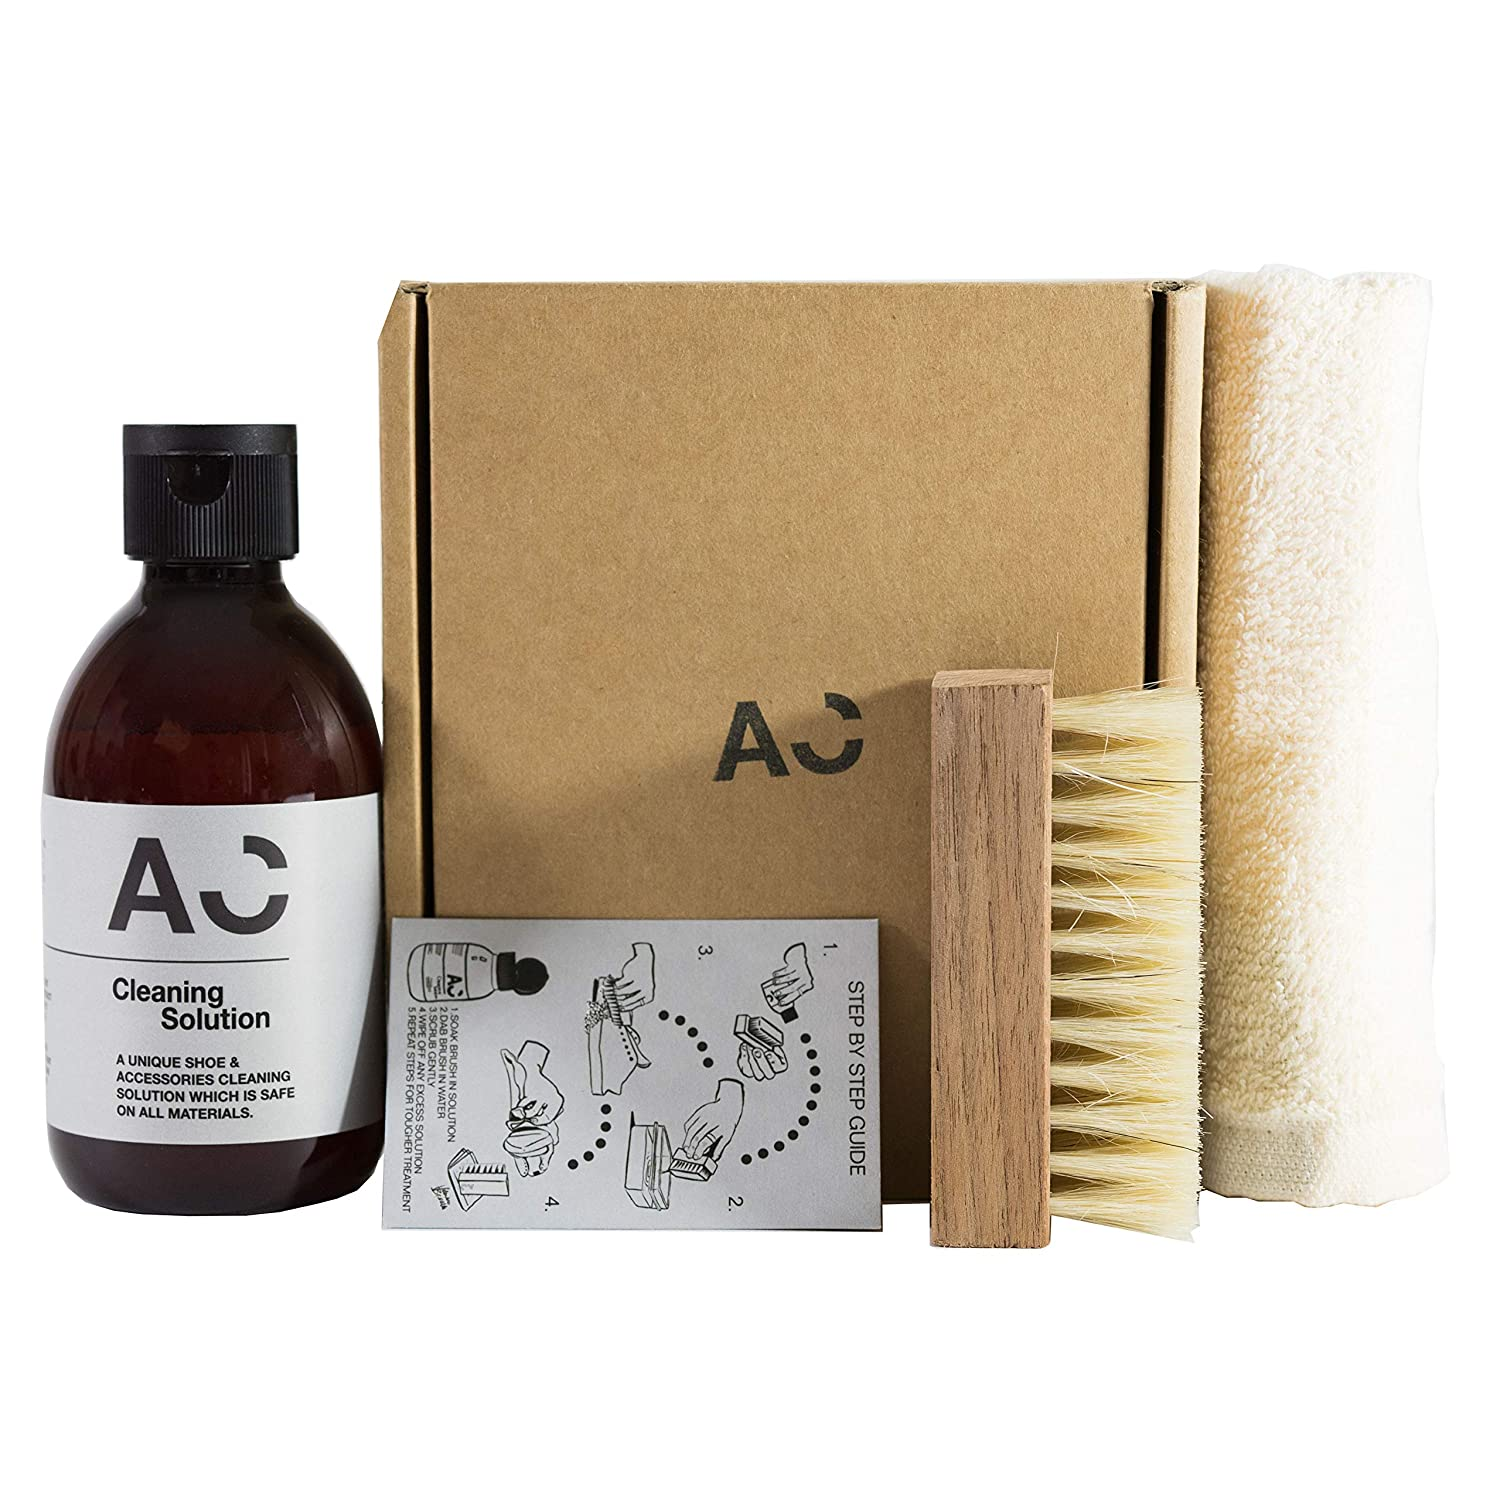 Shoe and Suede Cleaner Kit - 250ml Premium Shoe Cleaning Solution With Premium Brush & Cleaning Towel - Shoe Cleaner For Trainers, Leather, Suede, Nubuck, Canvas & More!